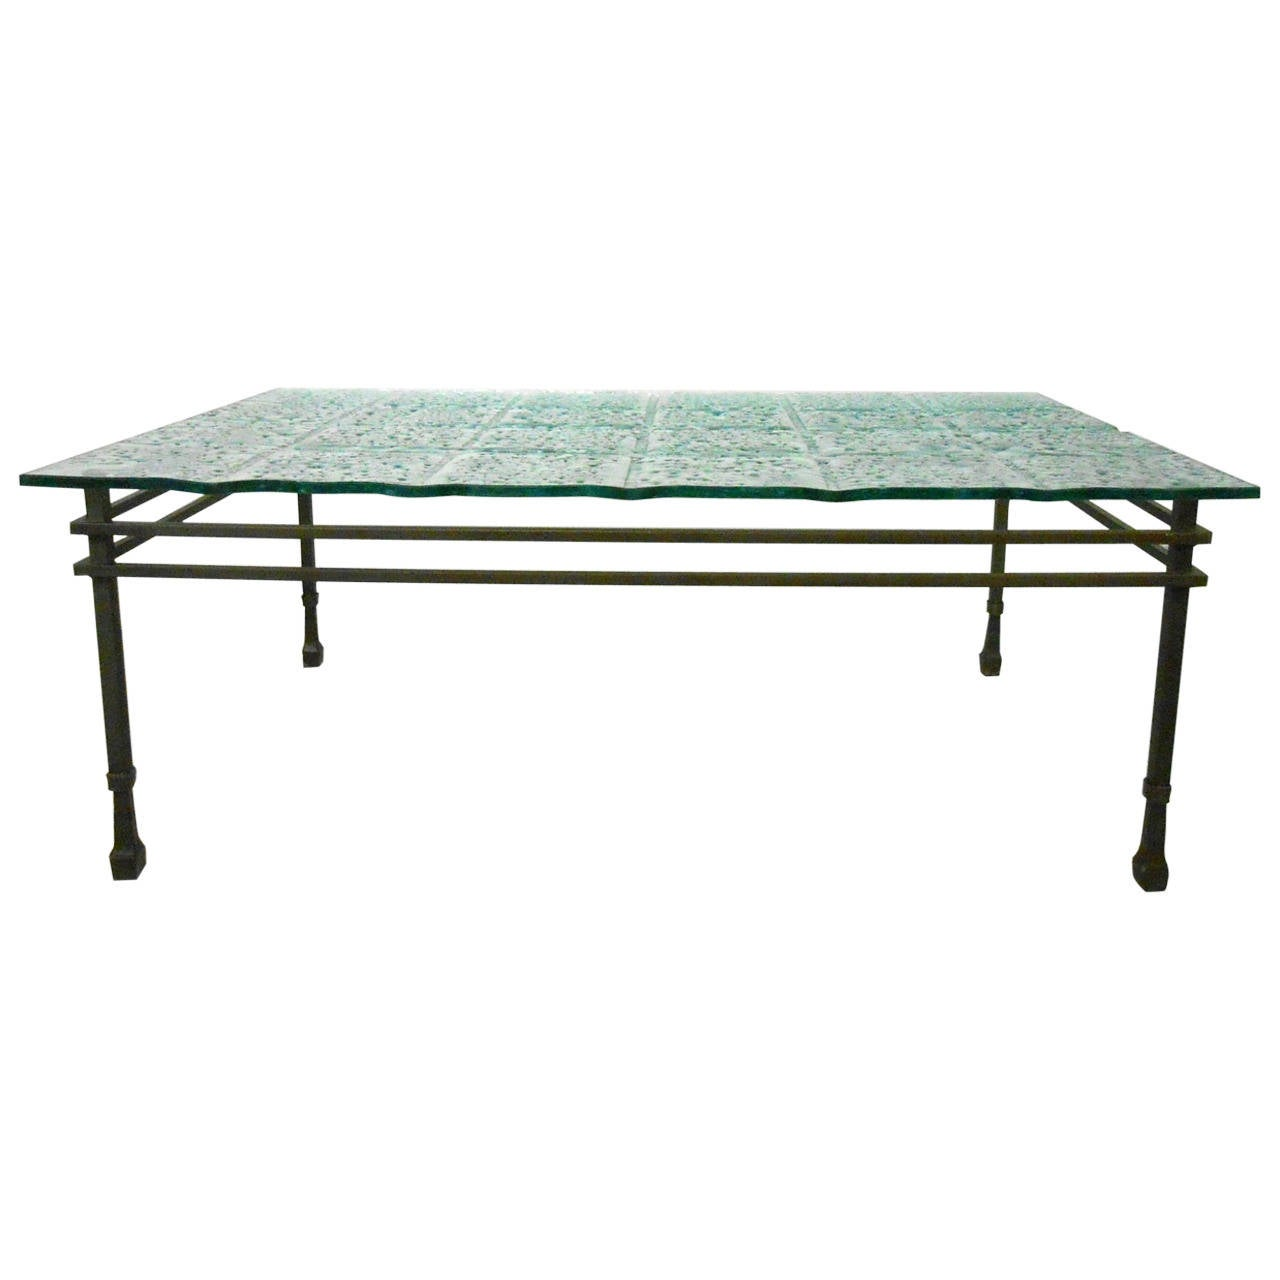 Style Textured Bubbled Glass And Iron Coffee Table For Sale At 1stdibs